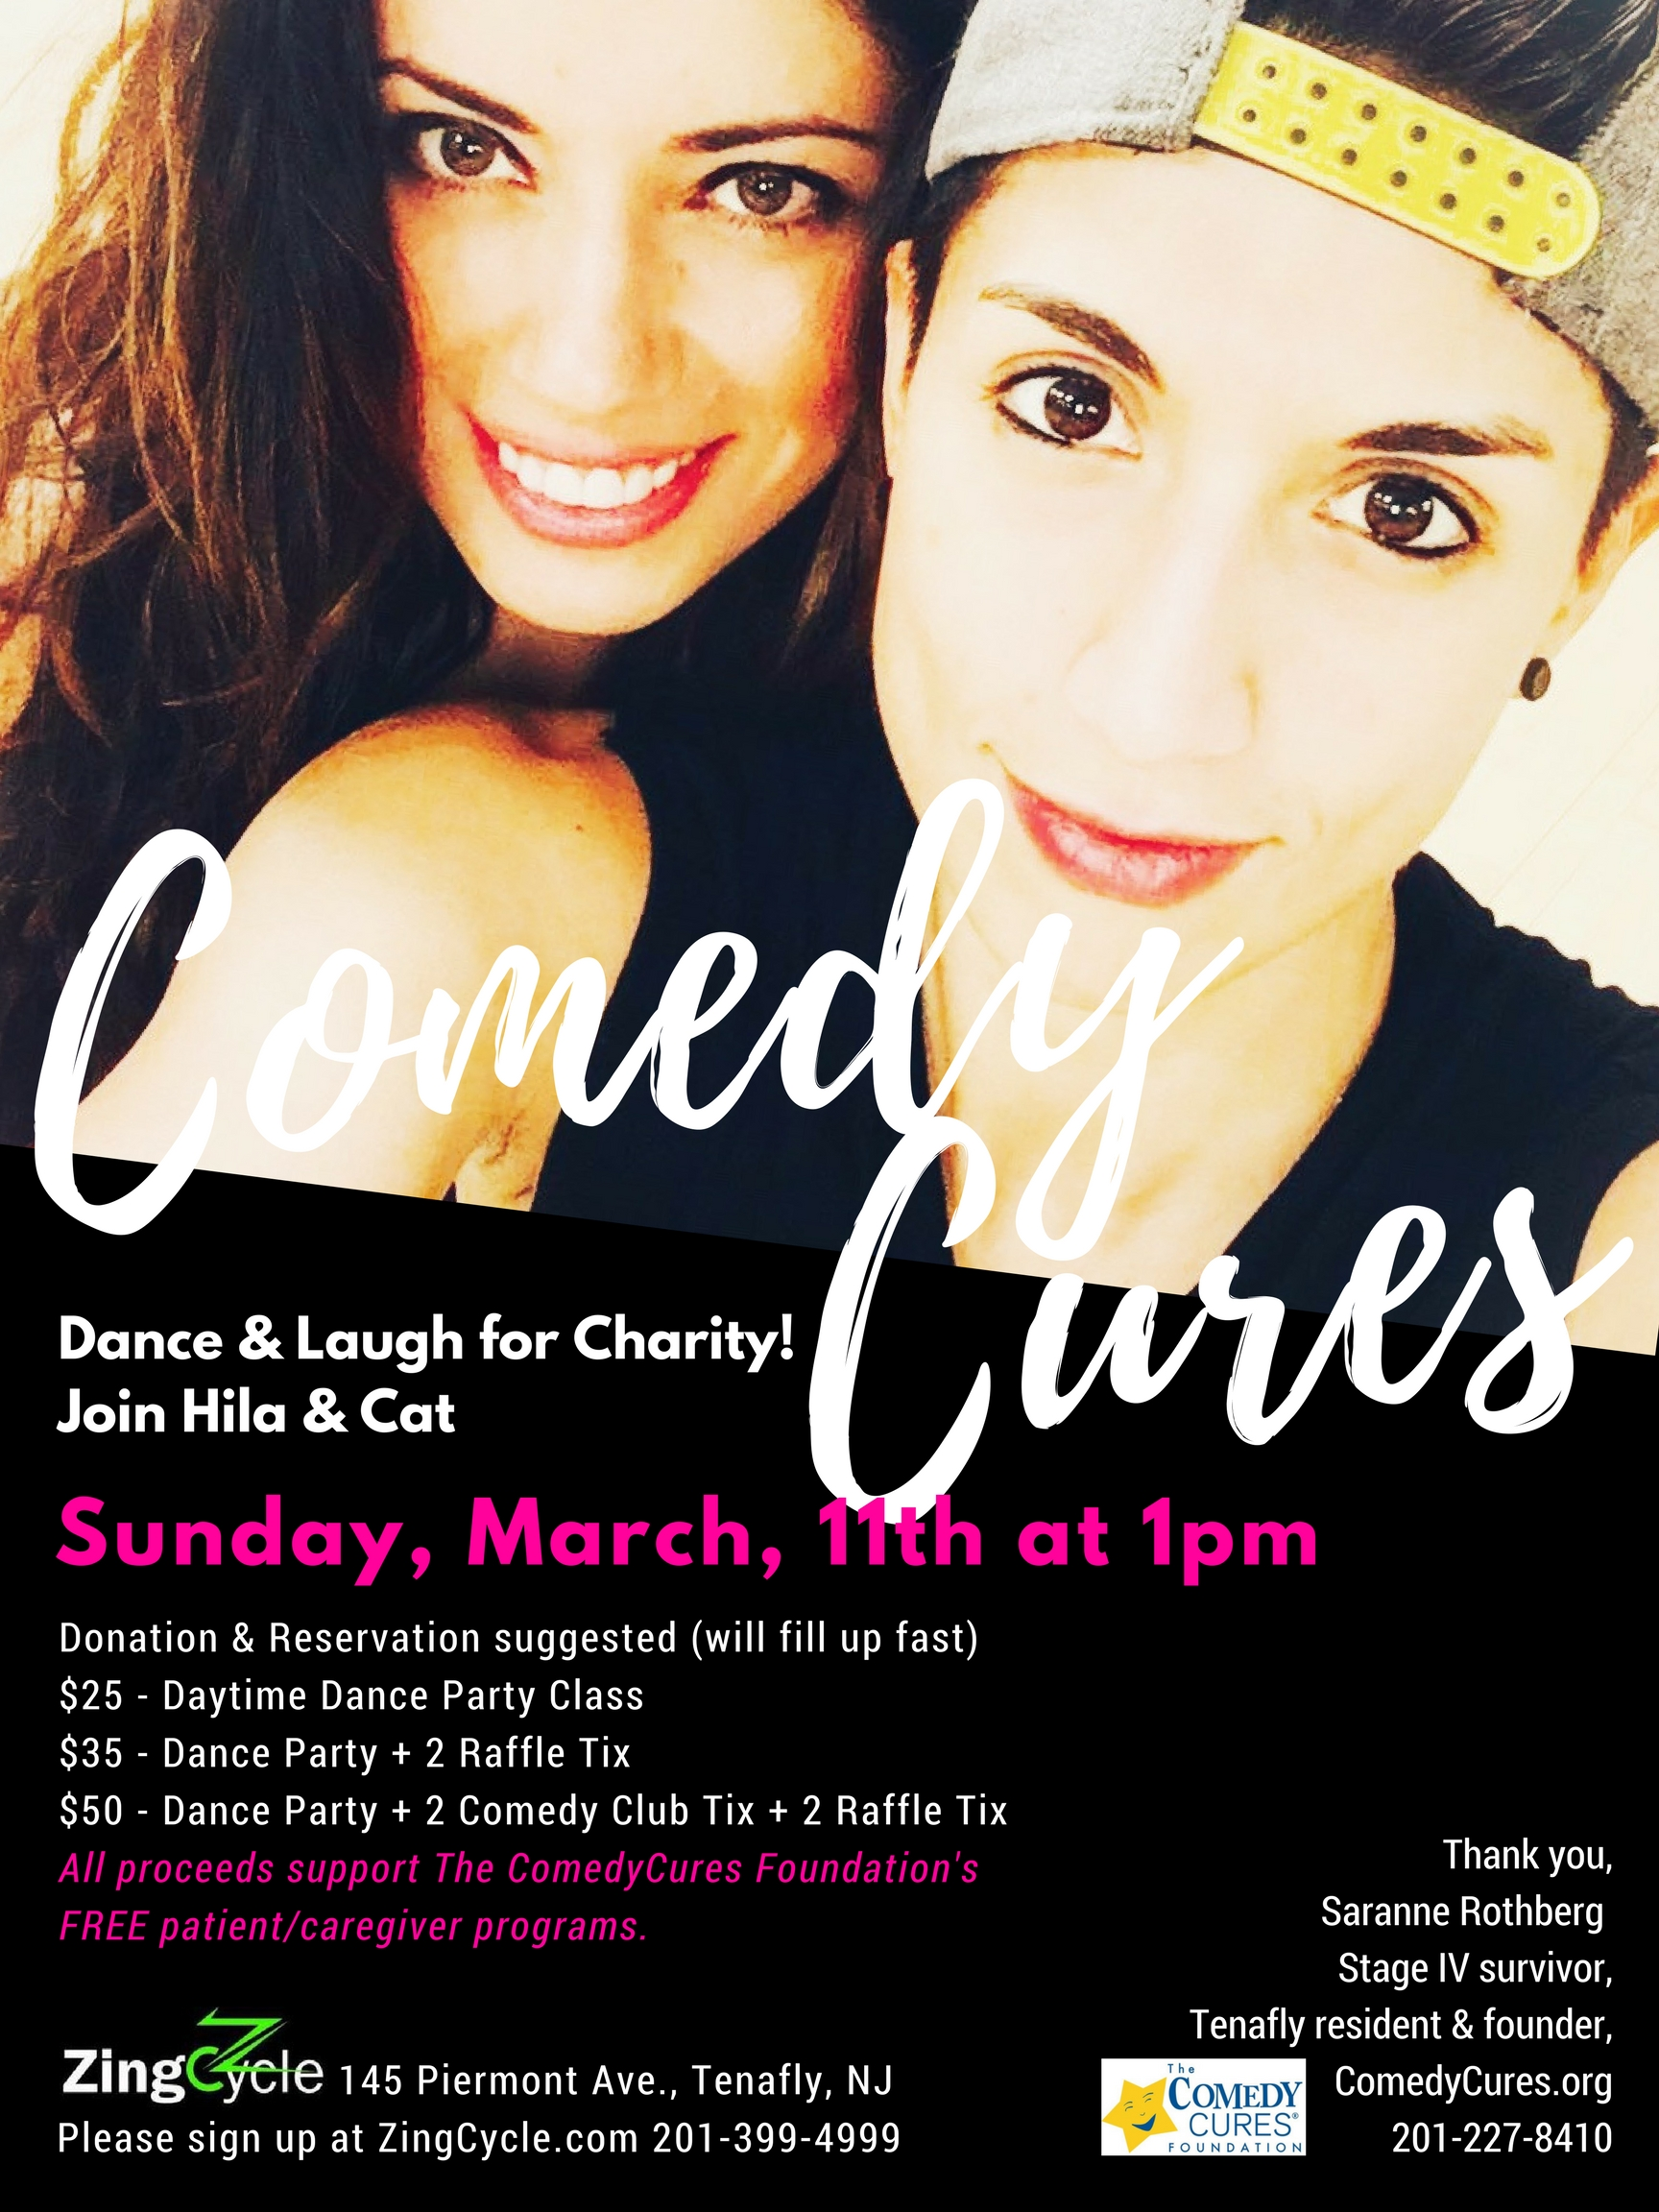 Dance & Laugh for Charity! Join Cat & Hila! Sunday, March 11th at 1pm.jpg